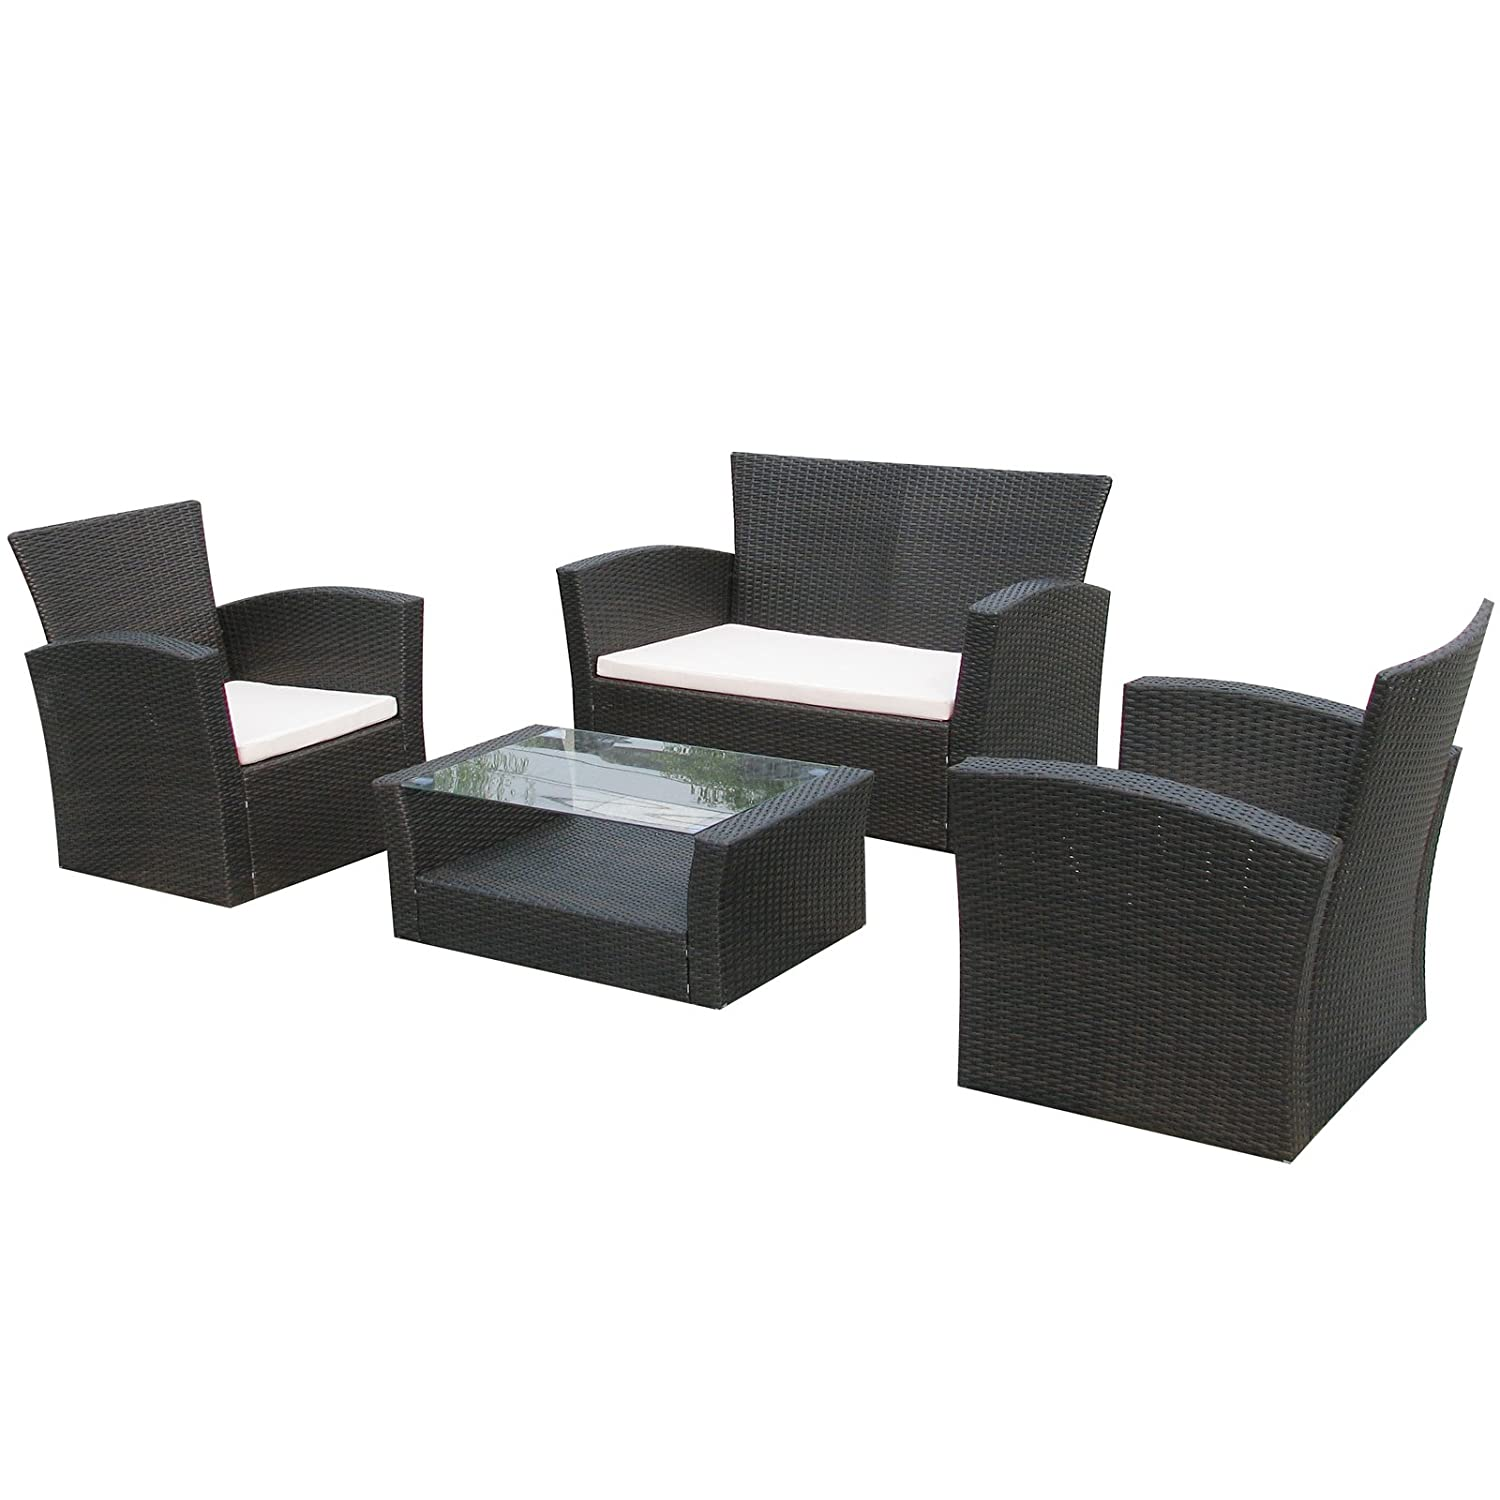 gartenmoebel lounge set lyon in braun garten moebel rattan polyrattan gartenausstattung von jet. Black Bedroom Furniture Sets. Home Design Ideas